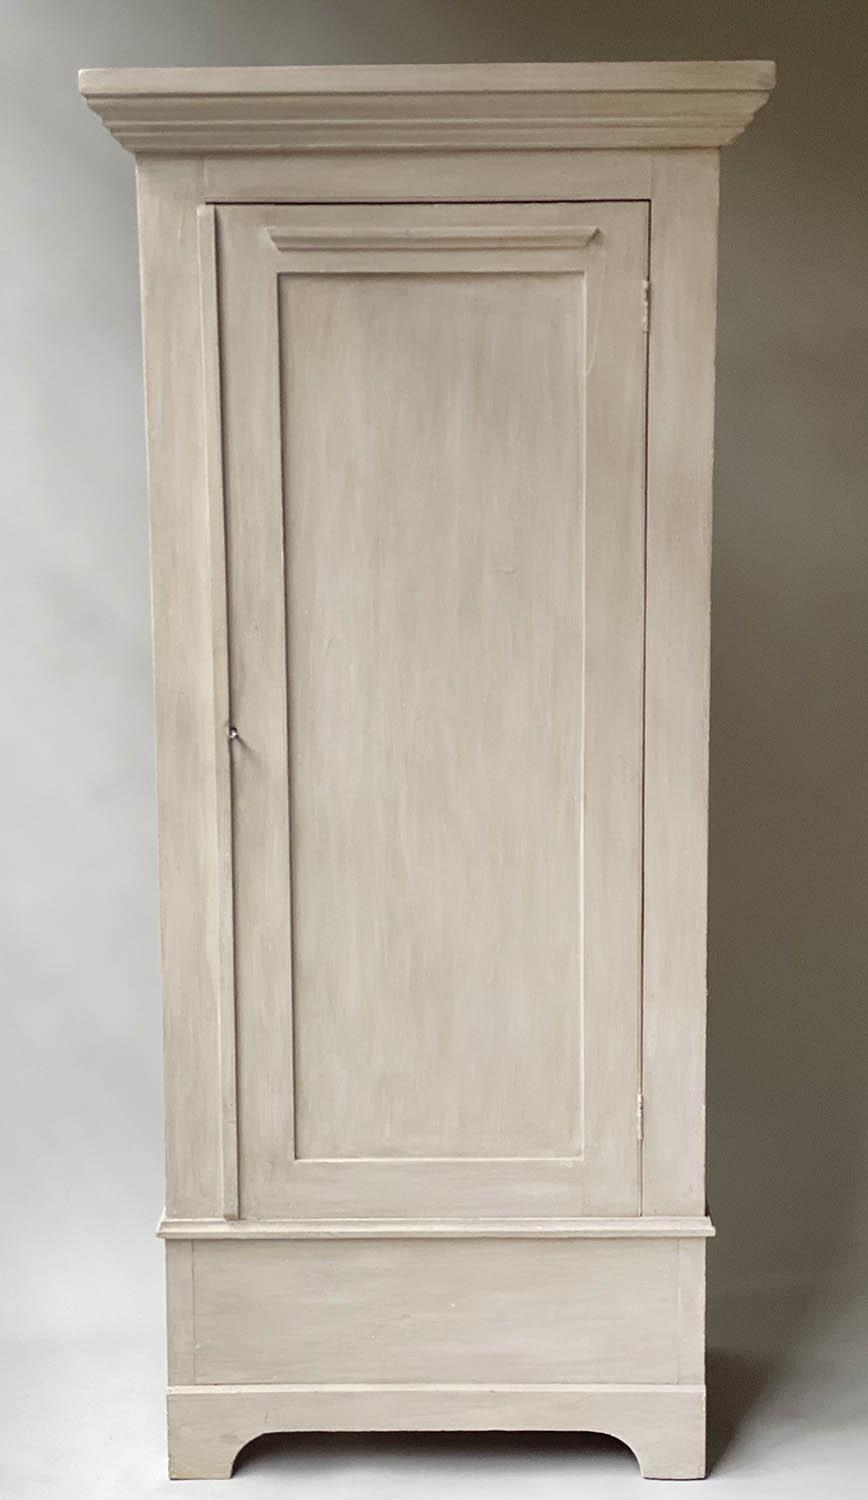 ARMOIRE, 19th century, traditionally grey painted with panelled door enclosing hanging space,